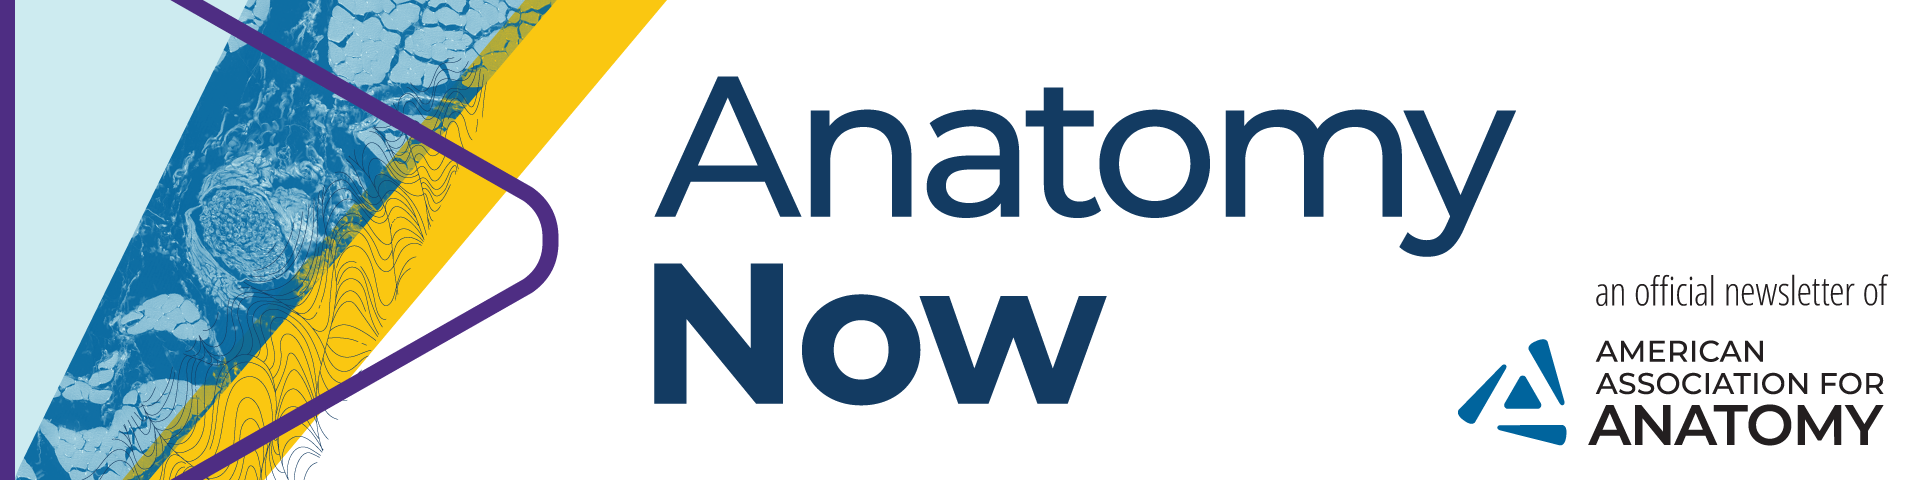 Anatomy Now header